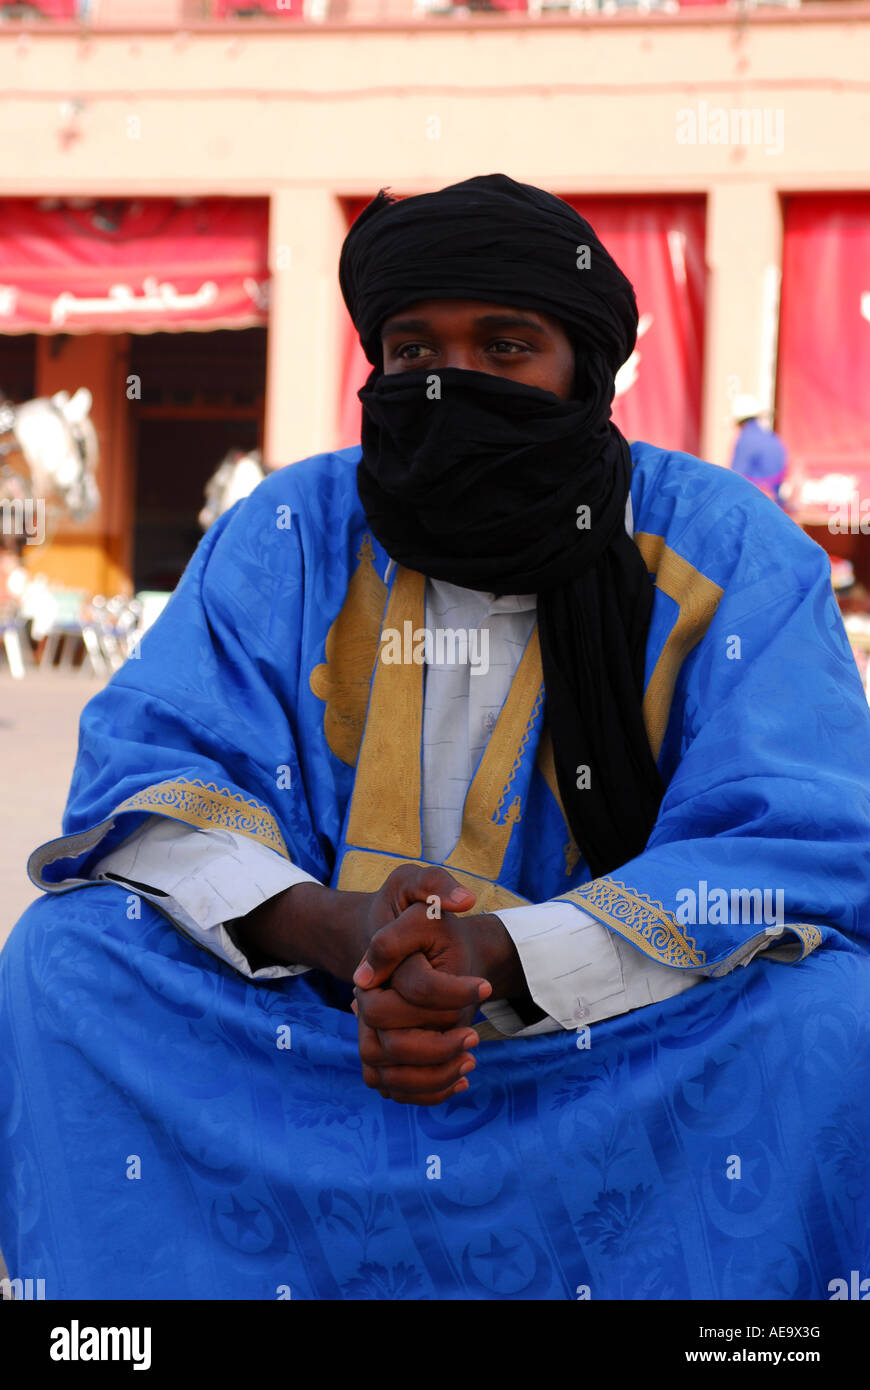 A blue man on Jemaa El Fna Marrakech, Morocco - Stock Image